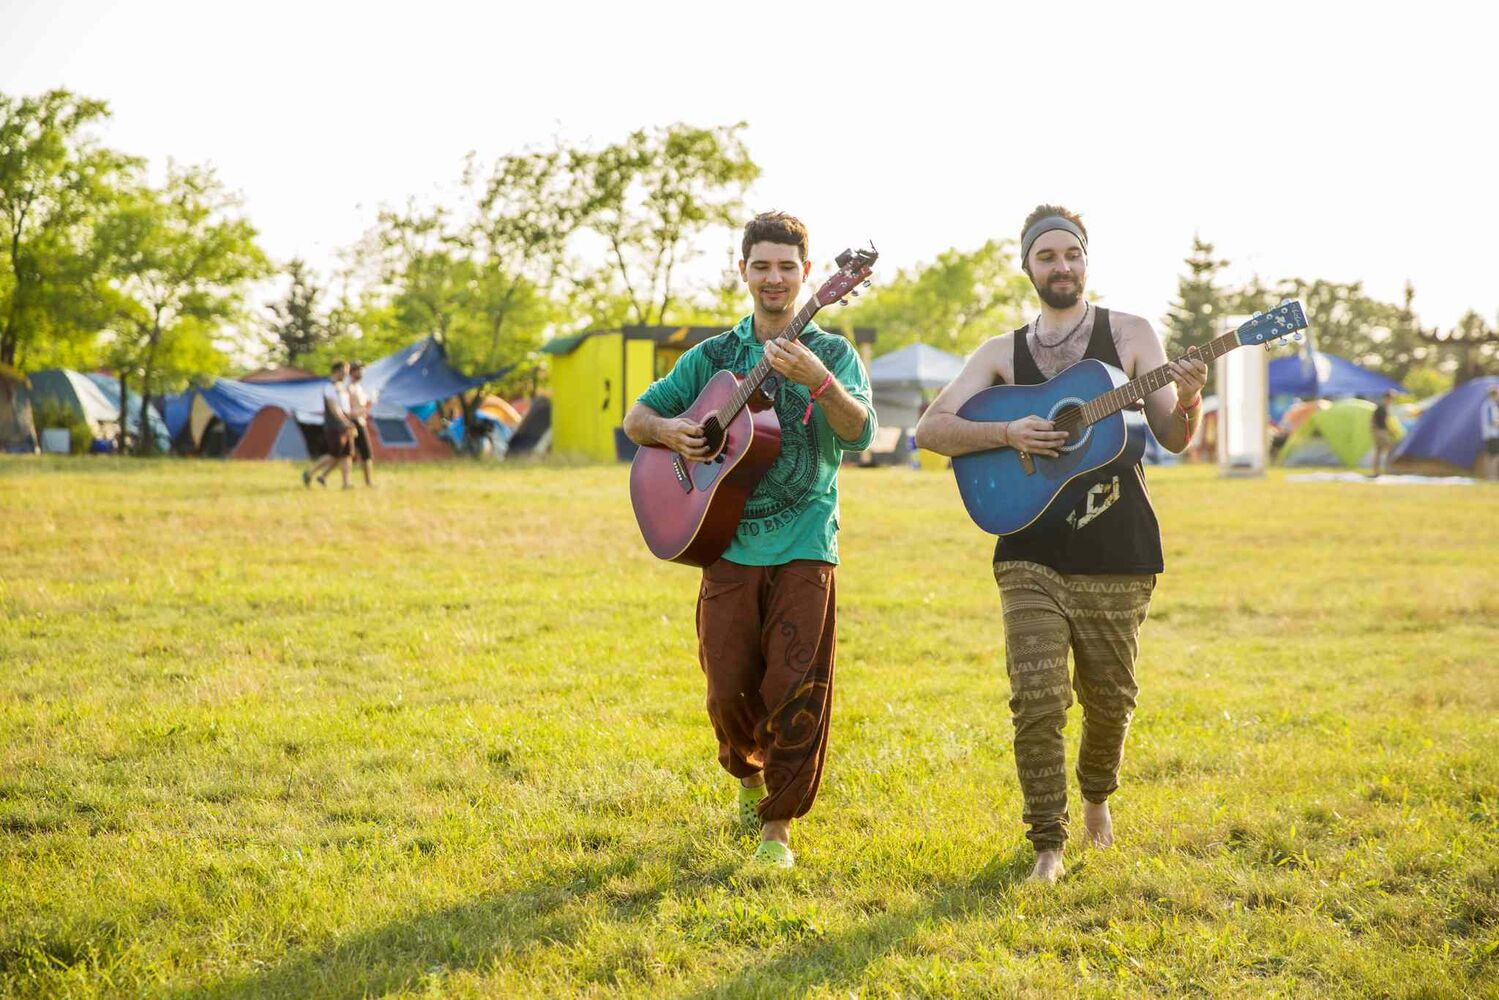 Christian Kuzdub (left) and Alexandre Joyal play guitar while walking through the folk fest campground at Birds Hill Park on Wednesday, July 8, 2015. (Mikaela MacKenzie / Winnipeg Free Press)